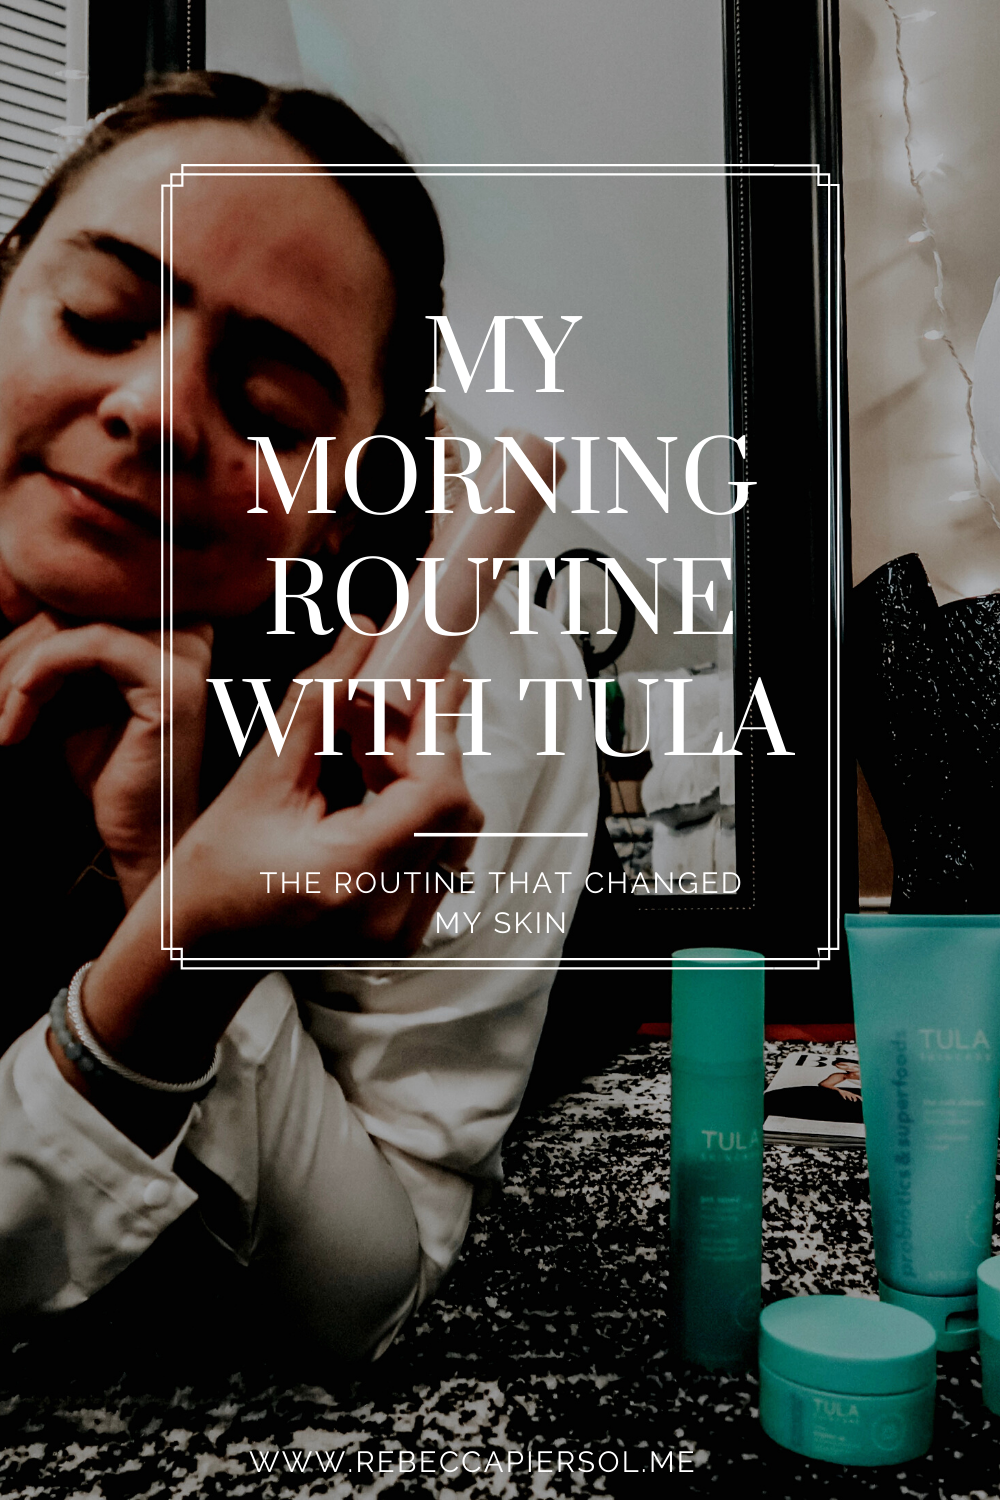 MORNING SKINCARE ROUTINE TULA